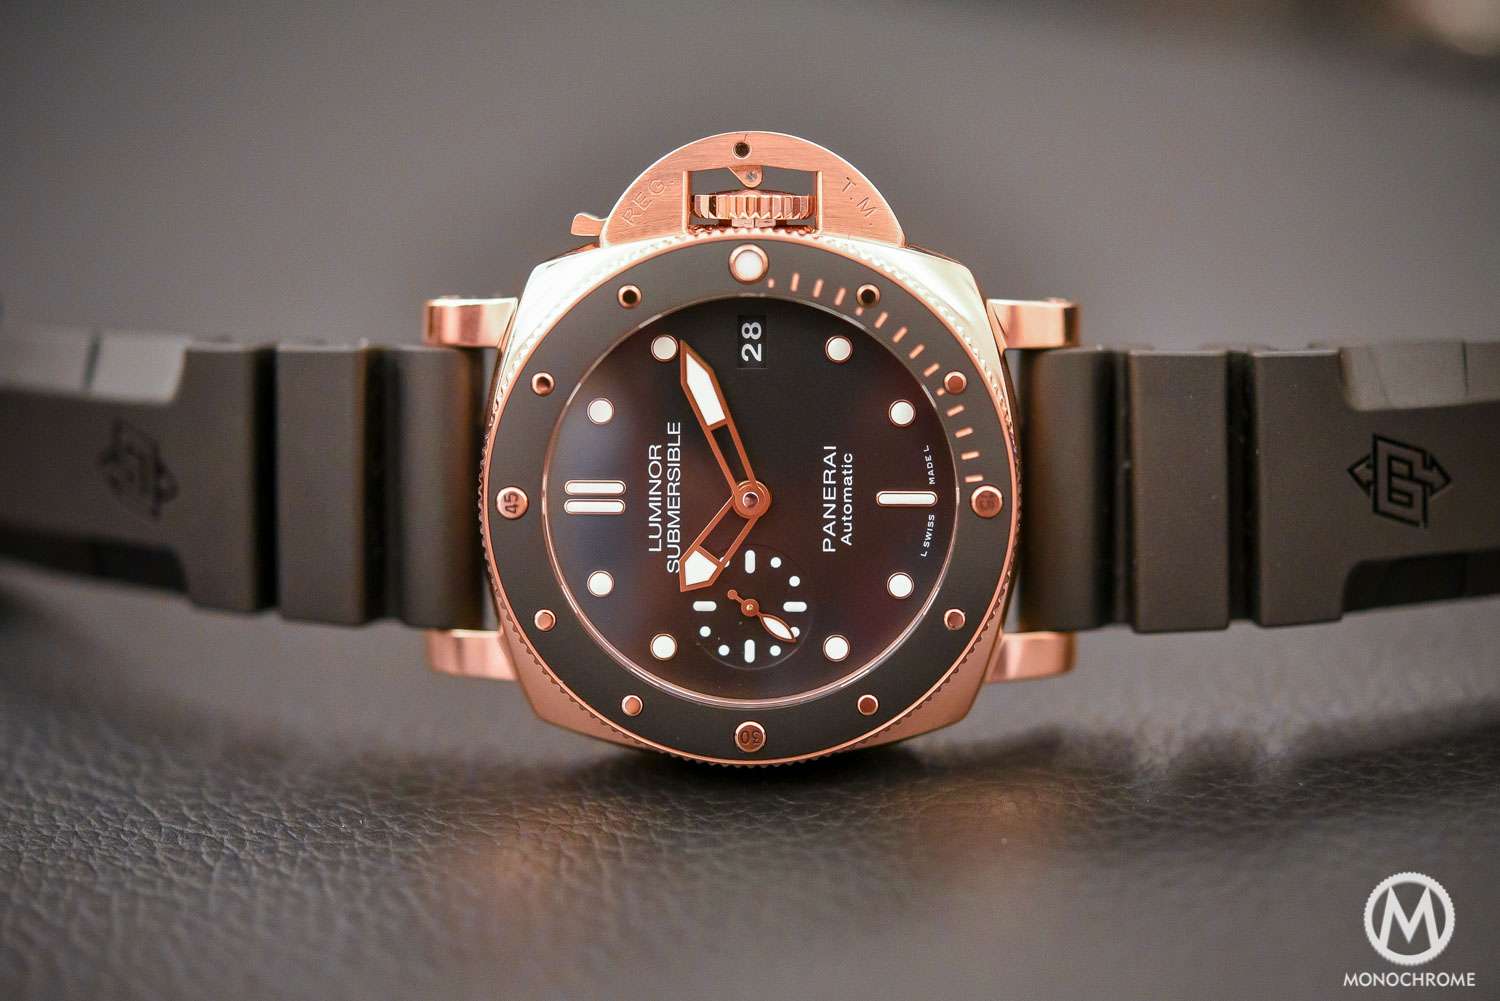 Panerai Luminor Submersible 1950 3 Days Automatic Oro Rosso copy